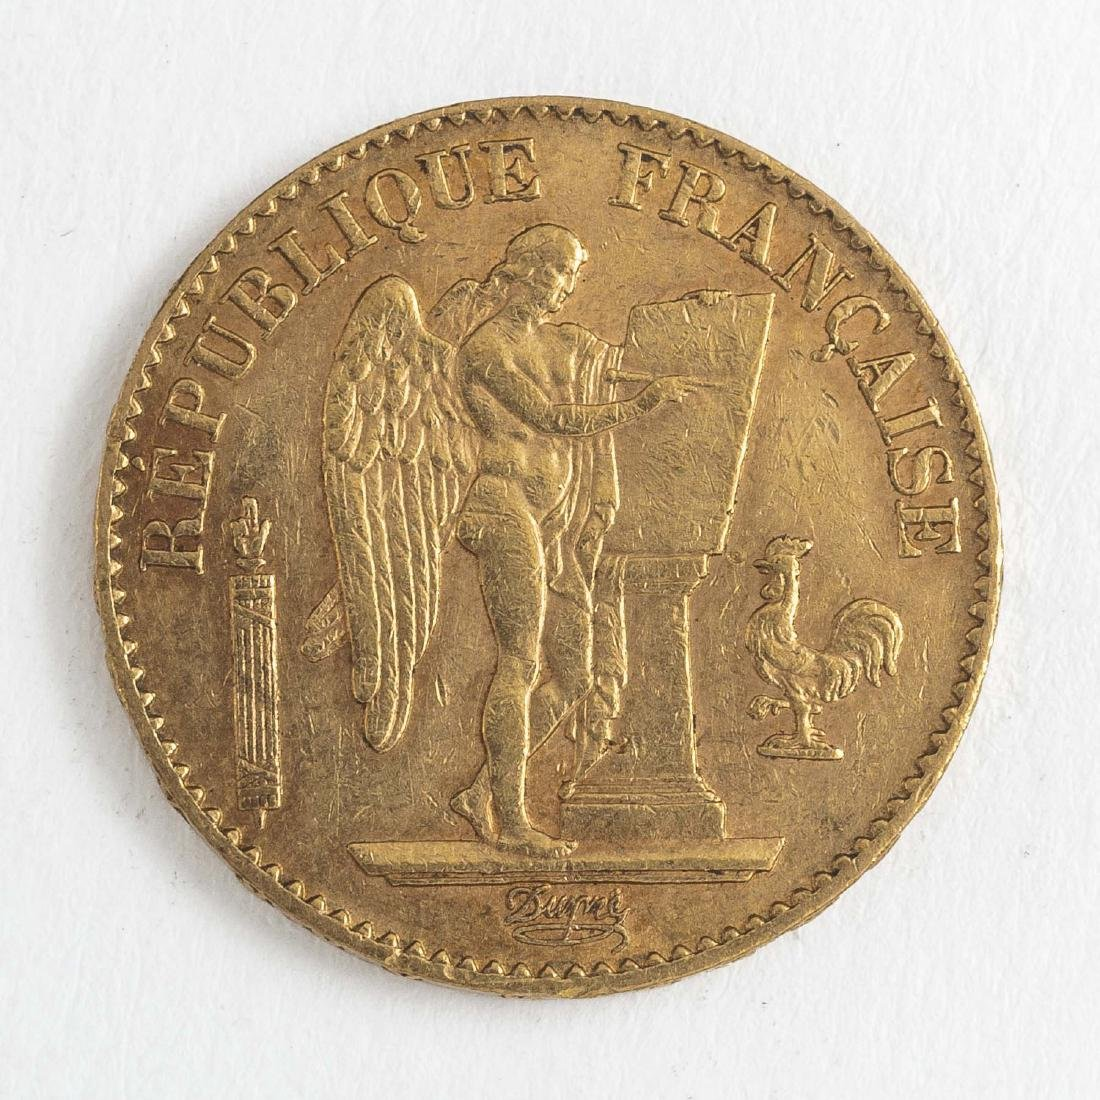 1896 20 Francs Gold Coin